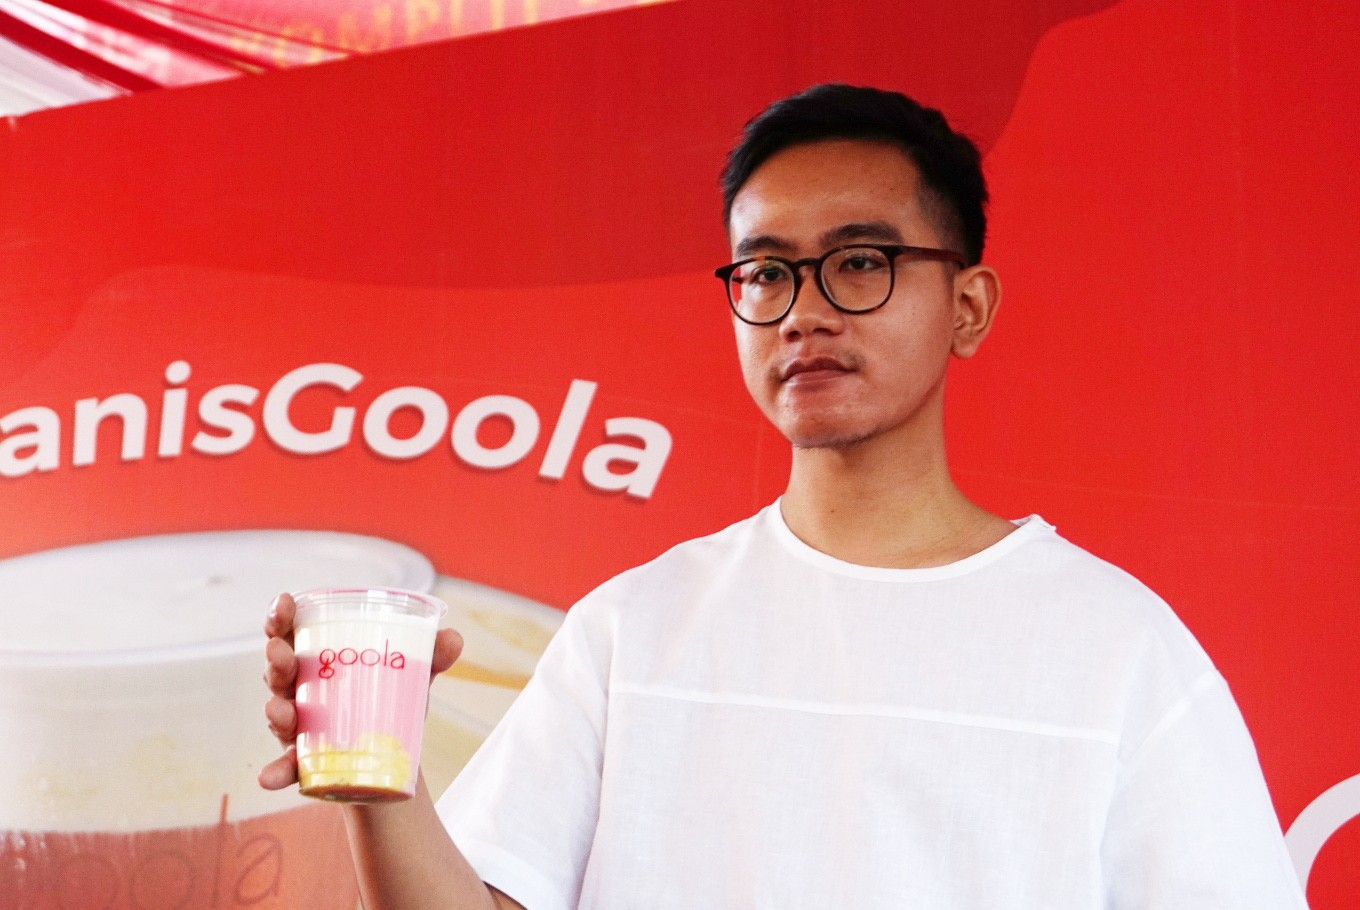 Jokowi's son a favorite for Surakarta mayoral election: Survey